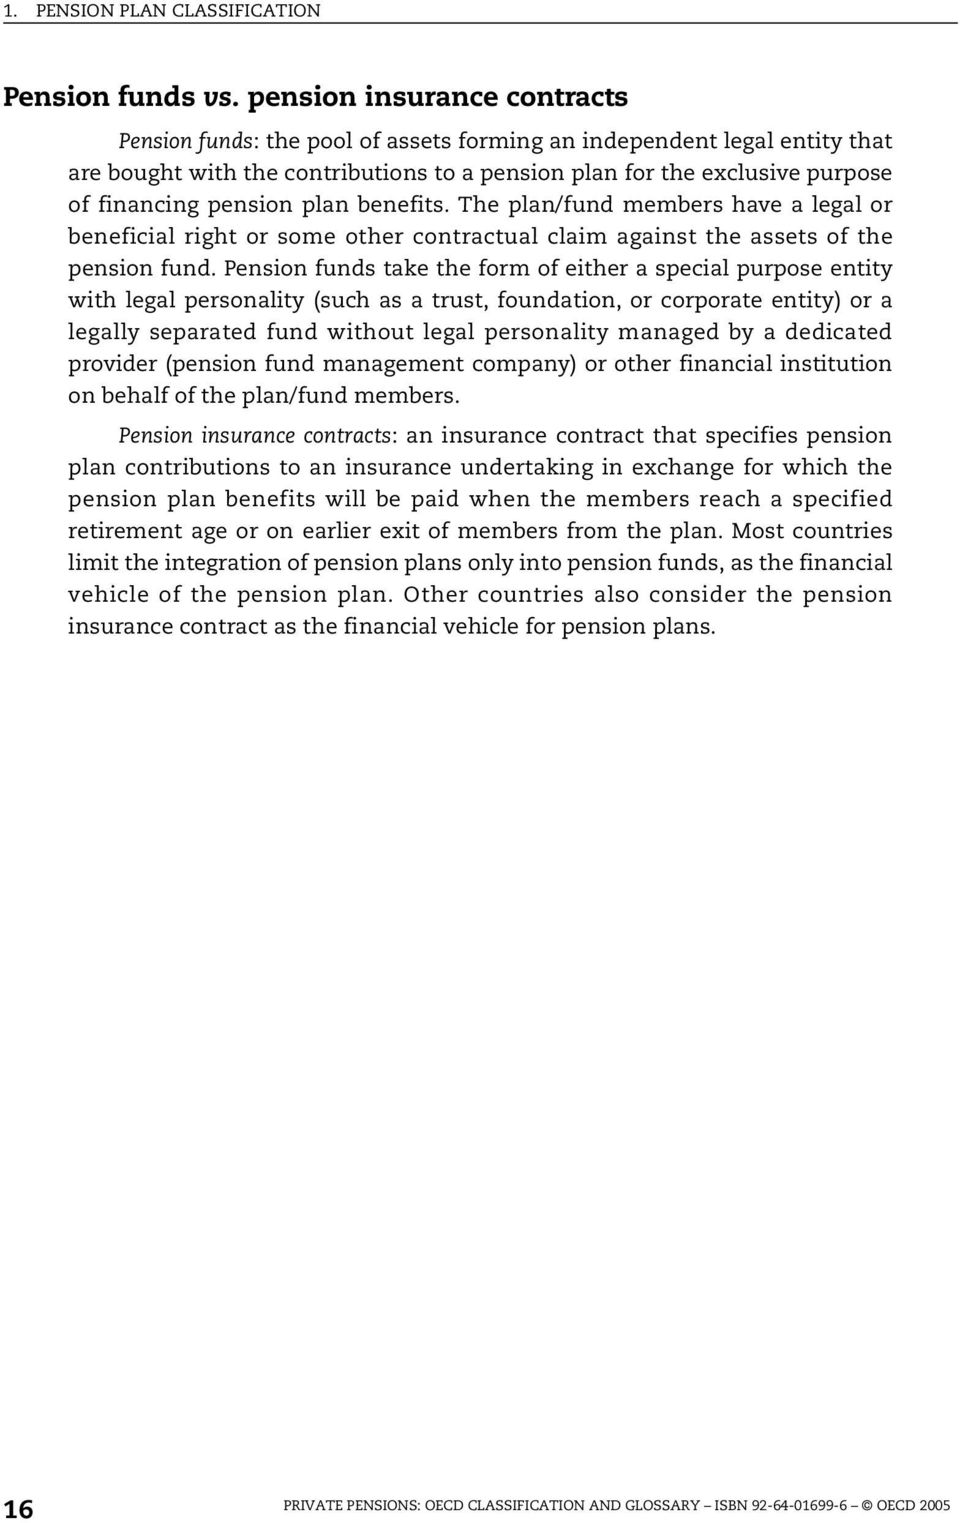 pension plan benefits. The plan/fund members have a legal or beneficial right or some other contractual claim against the assets of the pension fund.